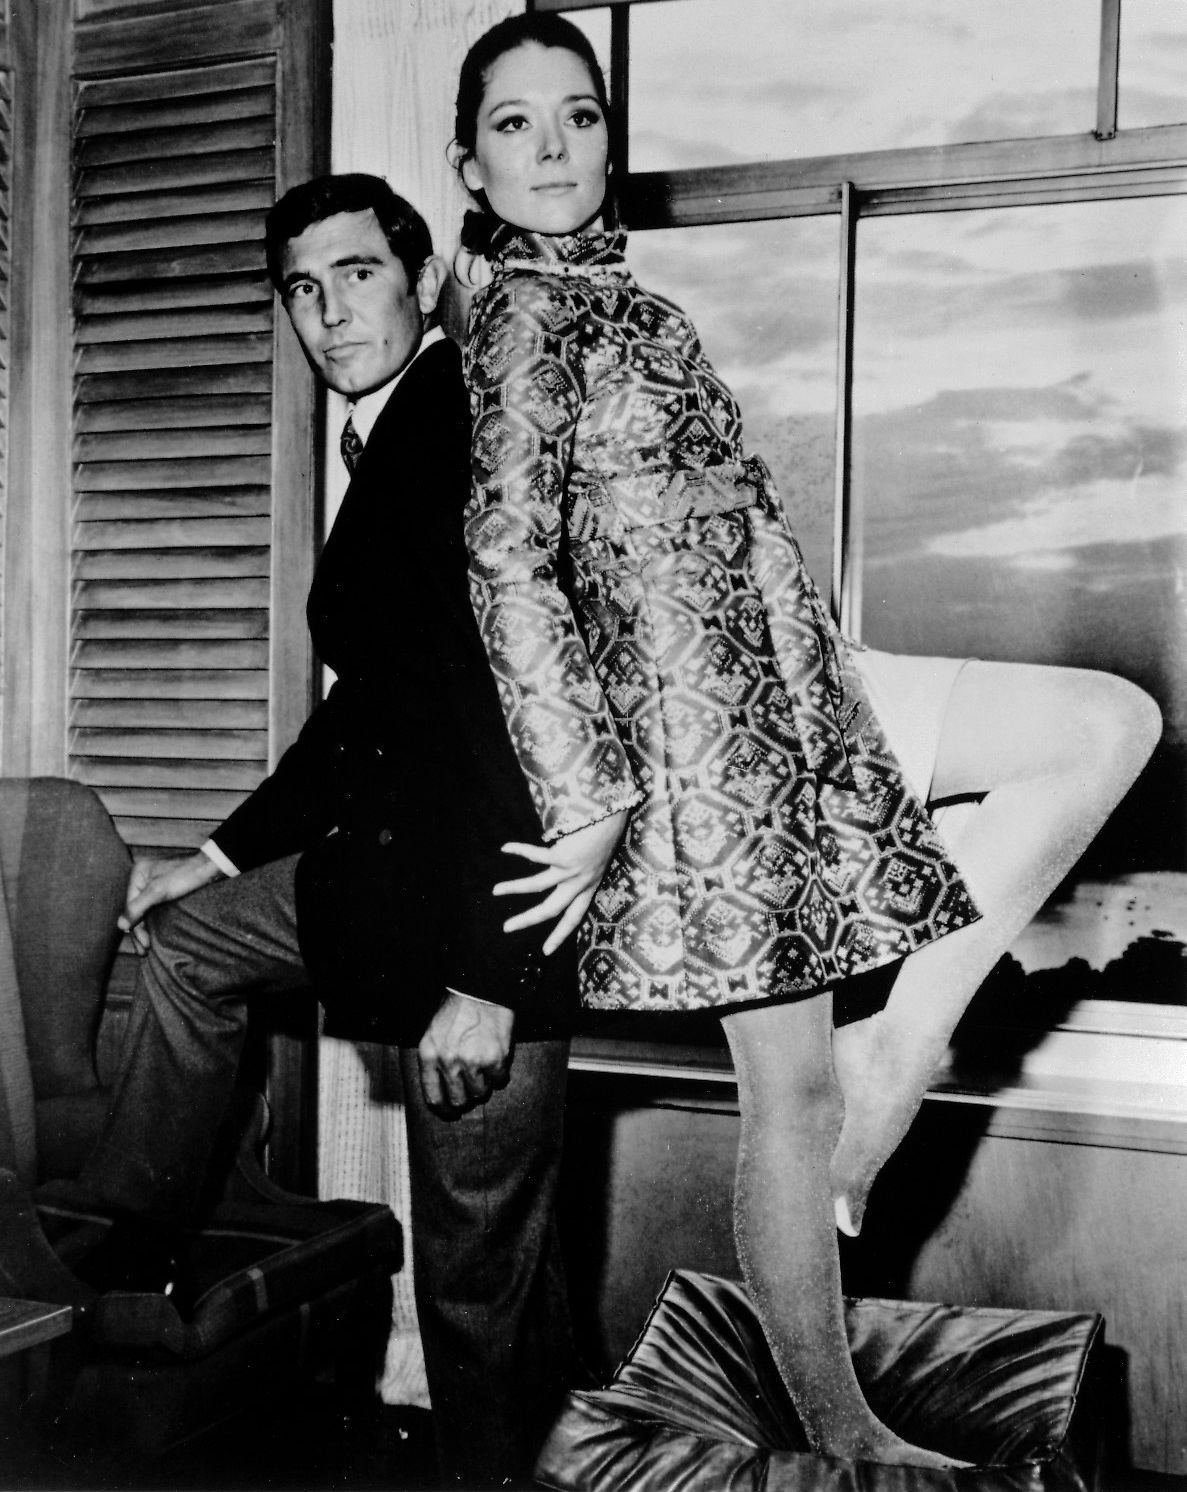 george lazenby and diana rigg on her majesty s secret service 1969 dame diana rigg james bond girls george lazenby dame diana rigg james bond girls